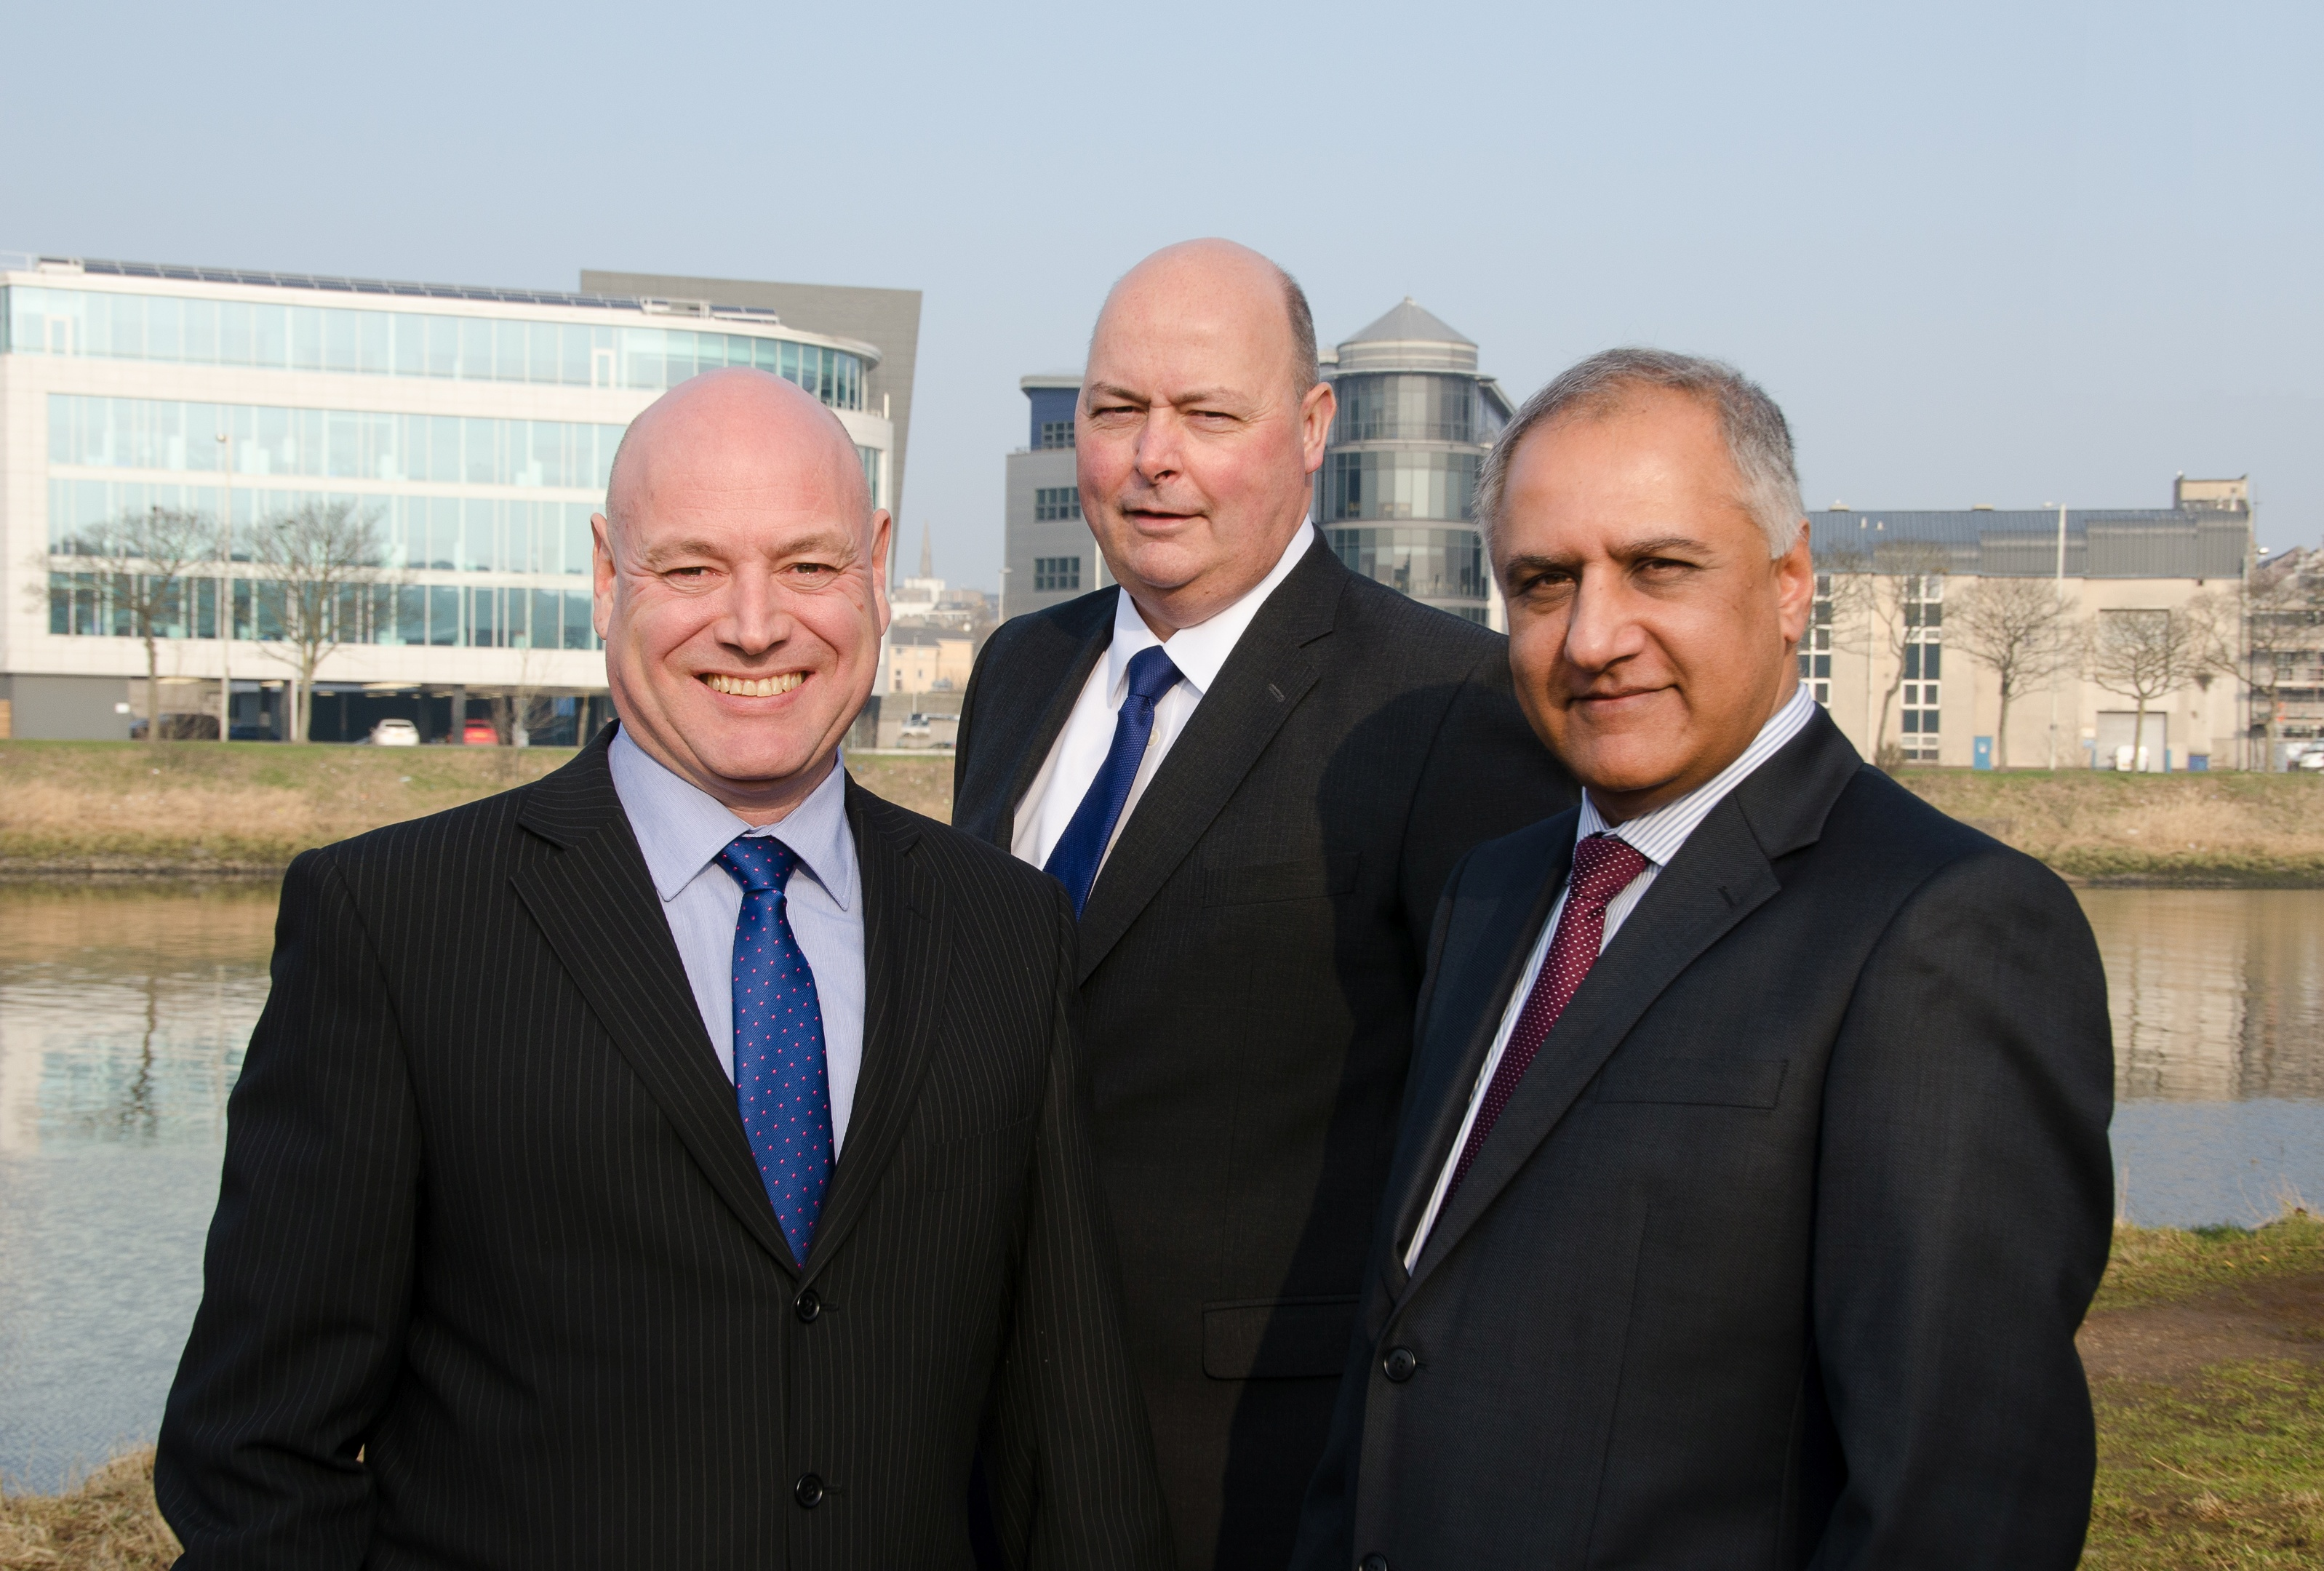 From left to right: Managing director John Wilson technical director Colin Bruce and consultancy director Satnam Shoker.